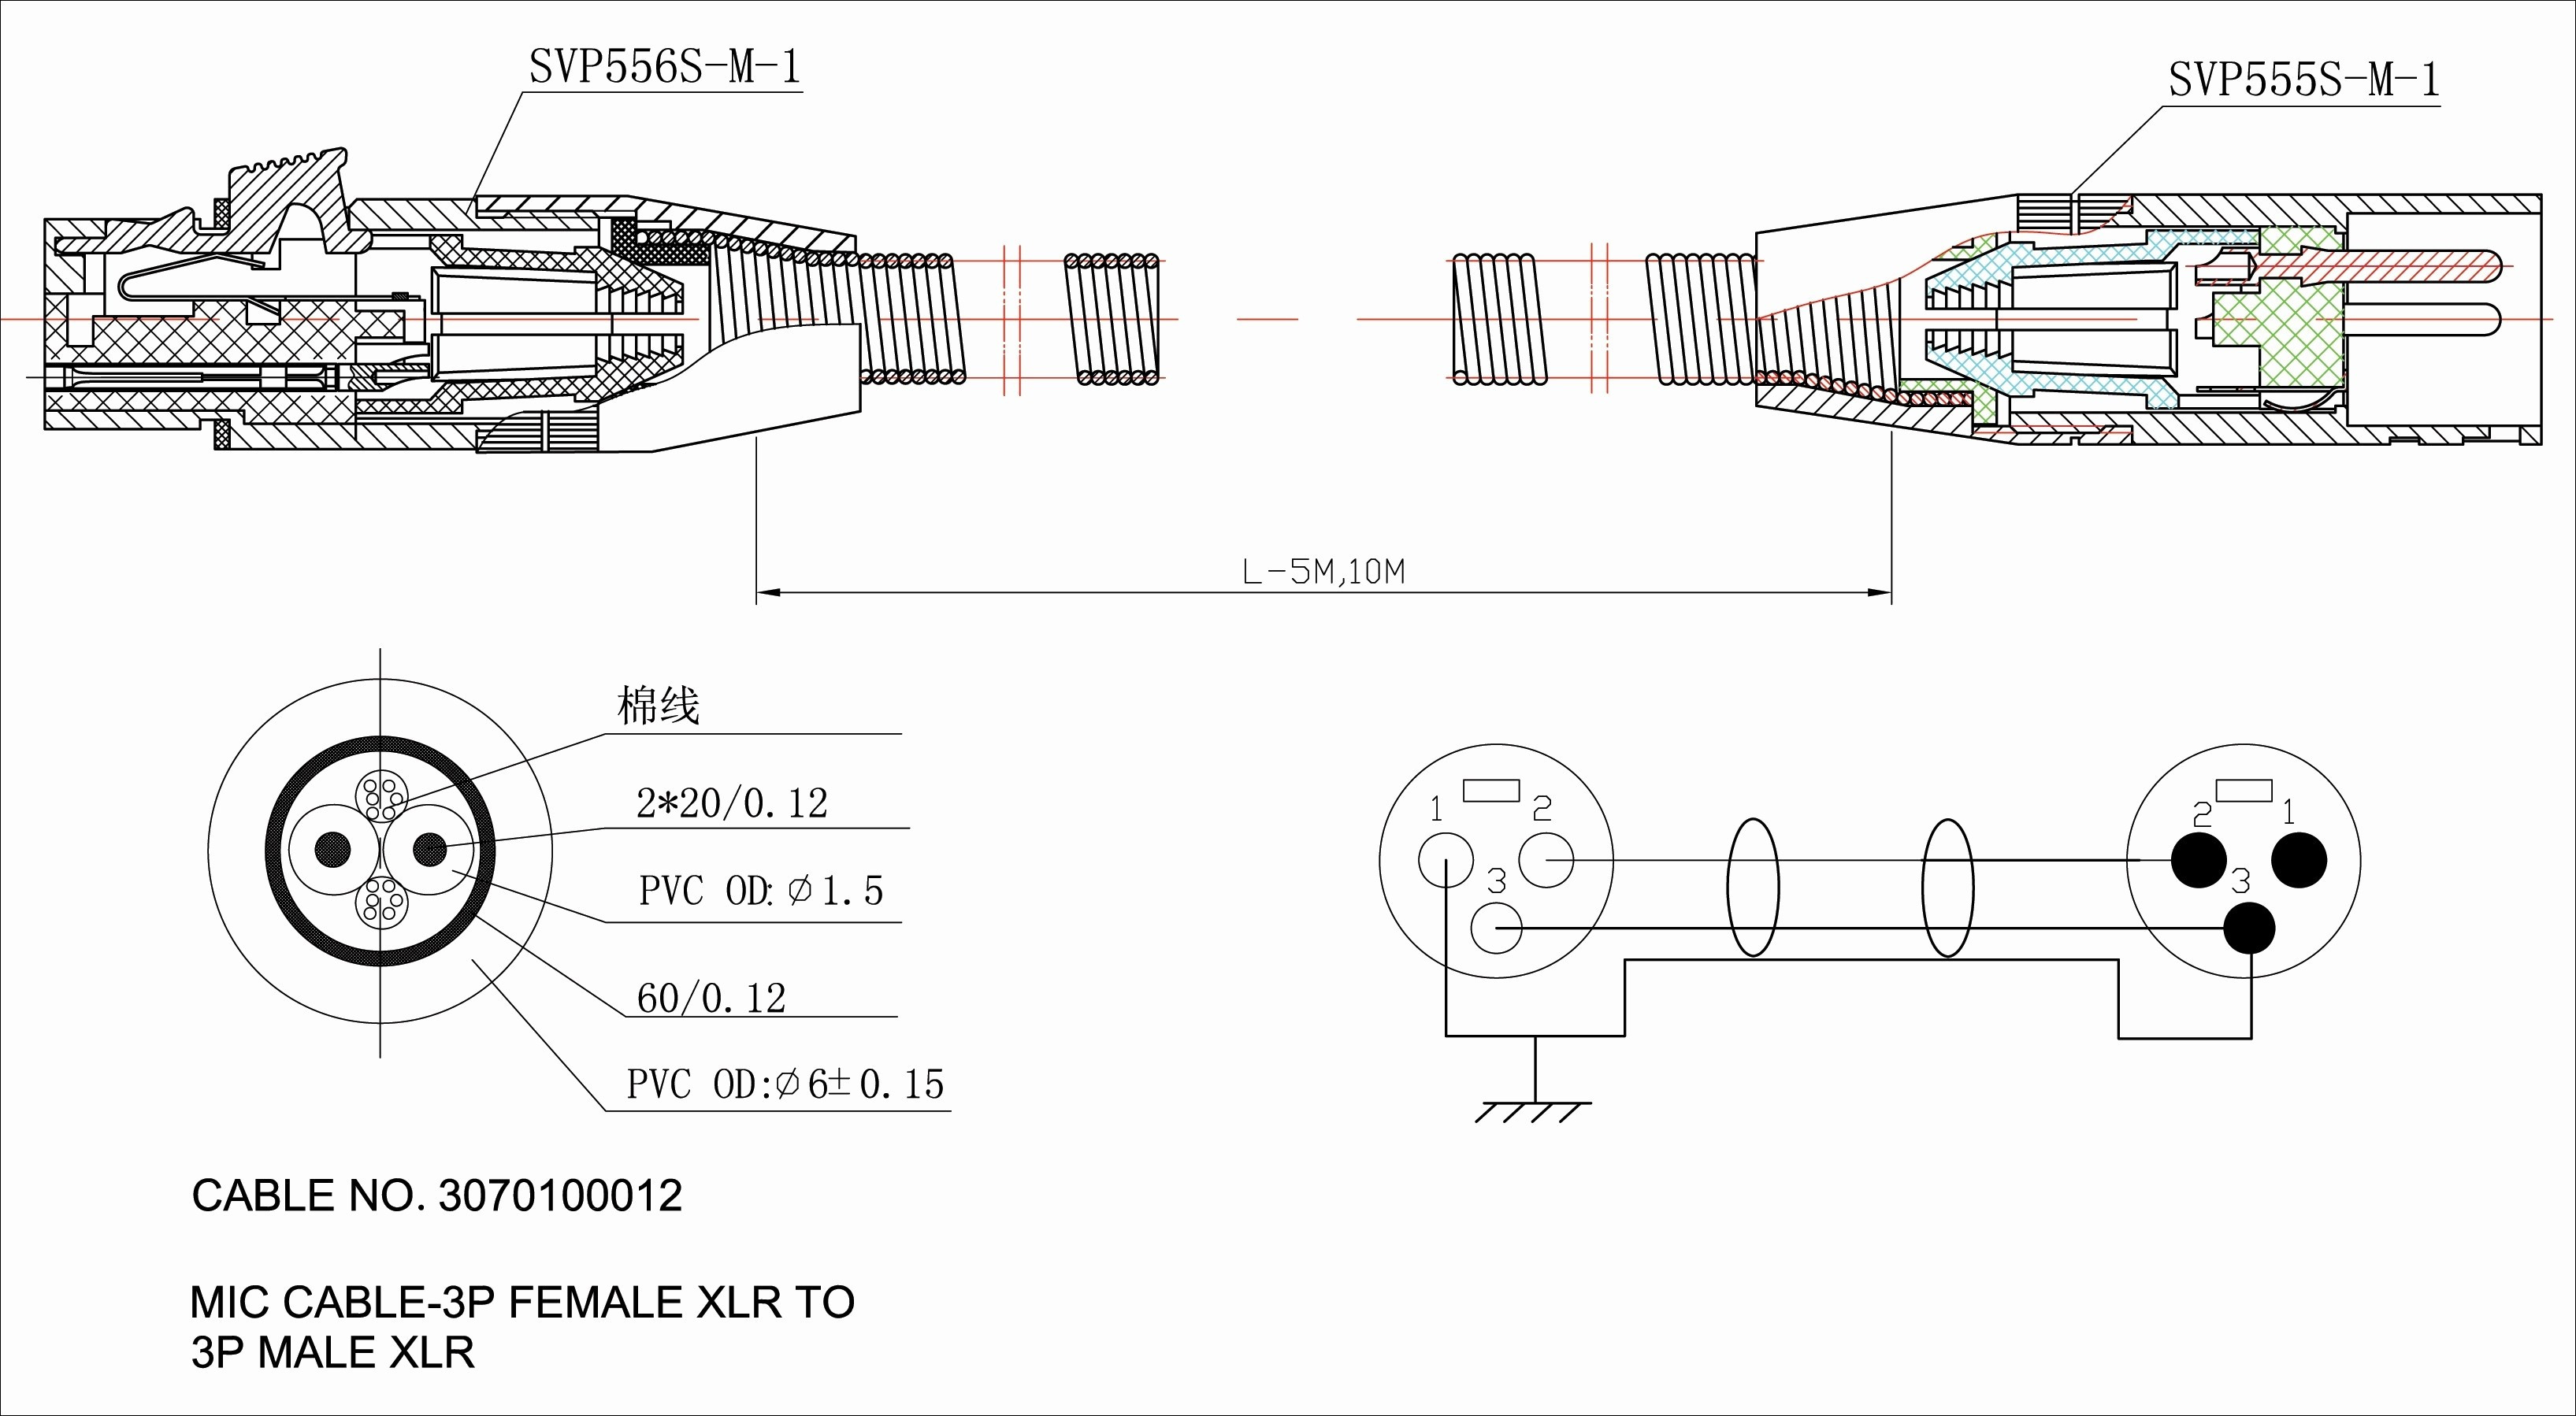 Kd R330 Wiring Harness Diagram - Data Wiring Diagram Today - Jvc Kdr330 Wiring Diagram